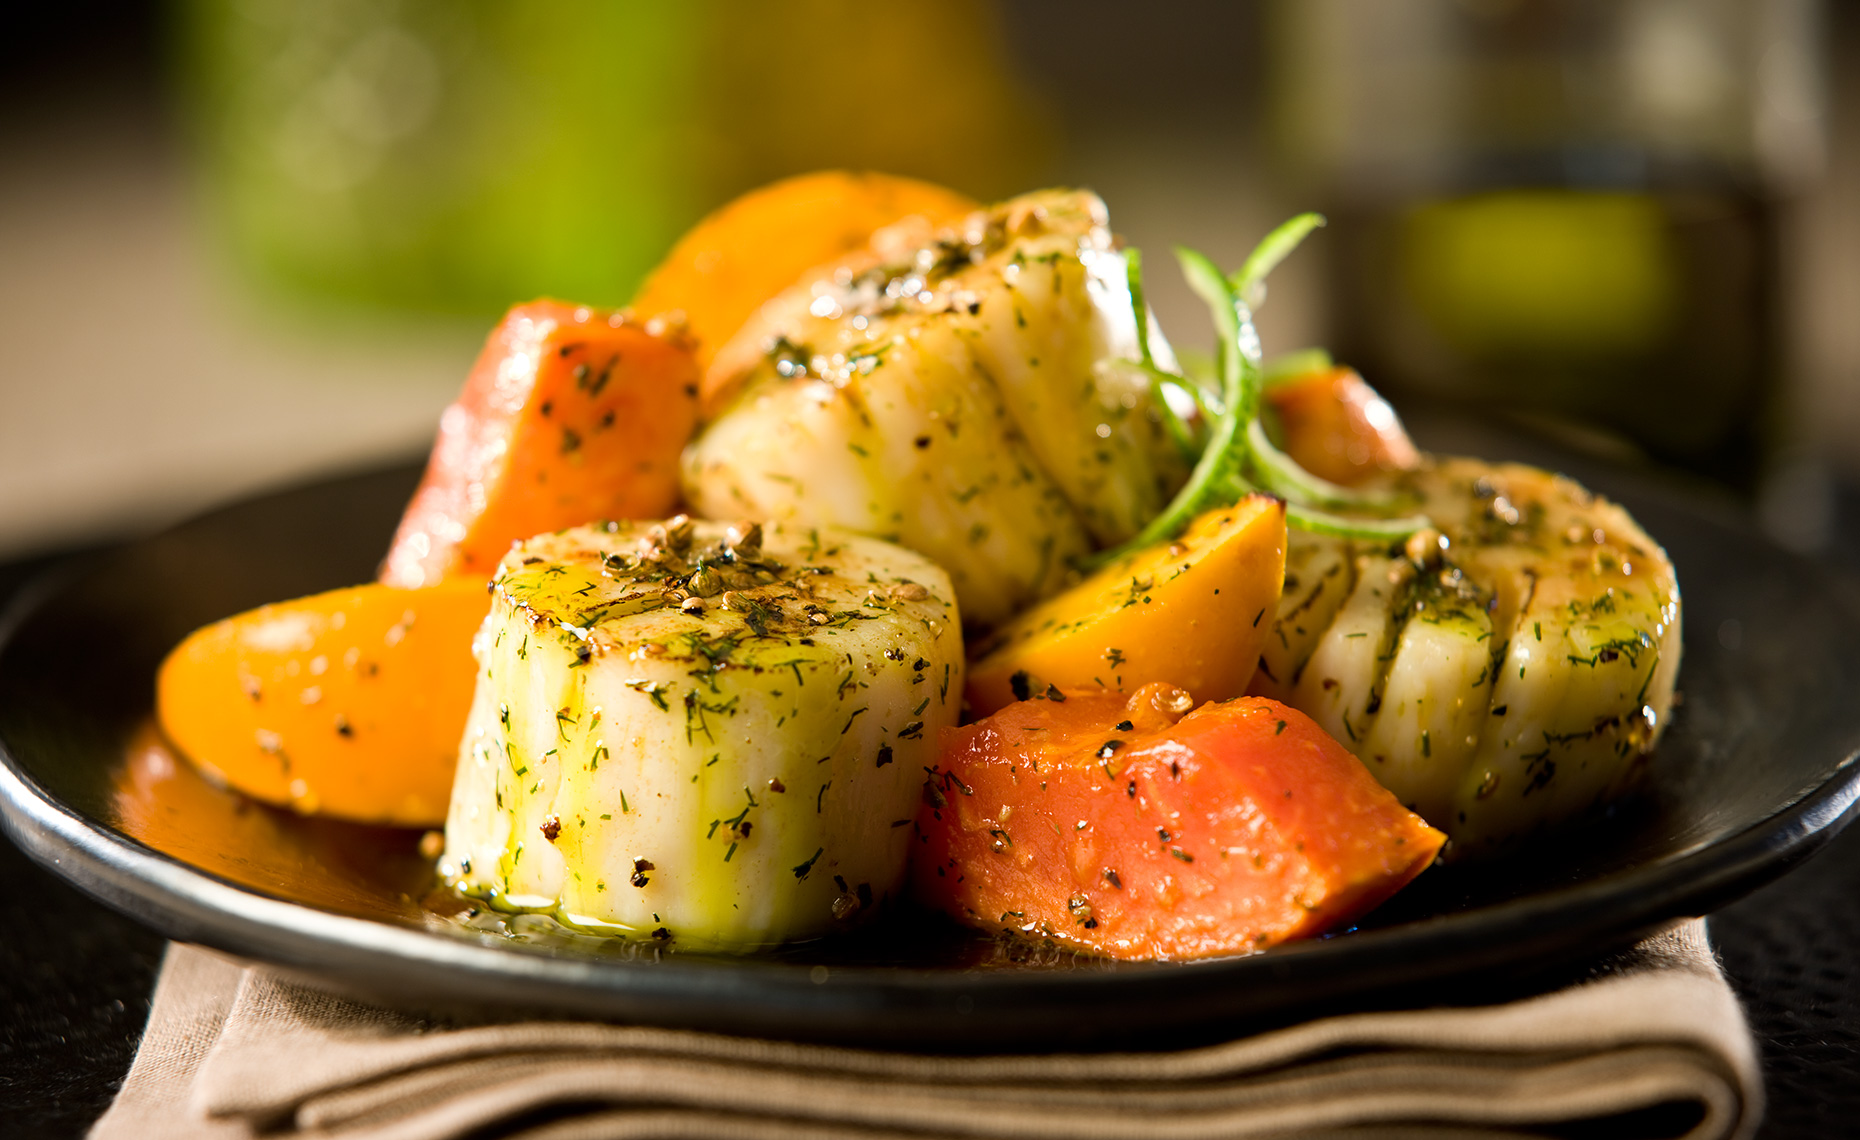 Food Photographer, Seafood Photography | Pohuski Studios,  Scallops Persimmons